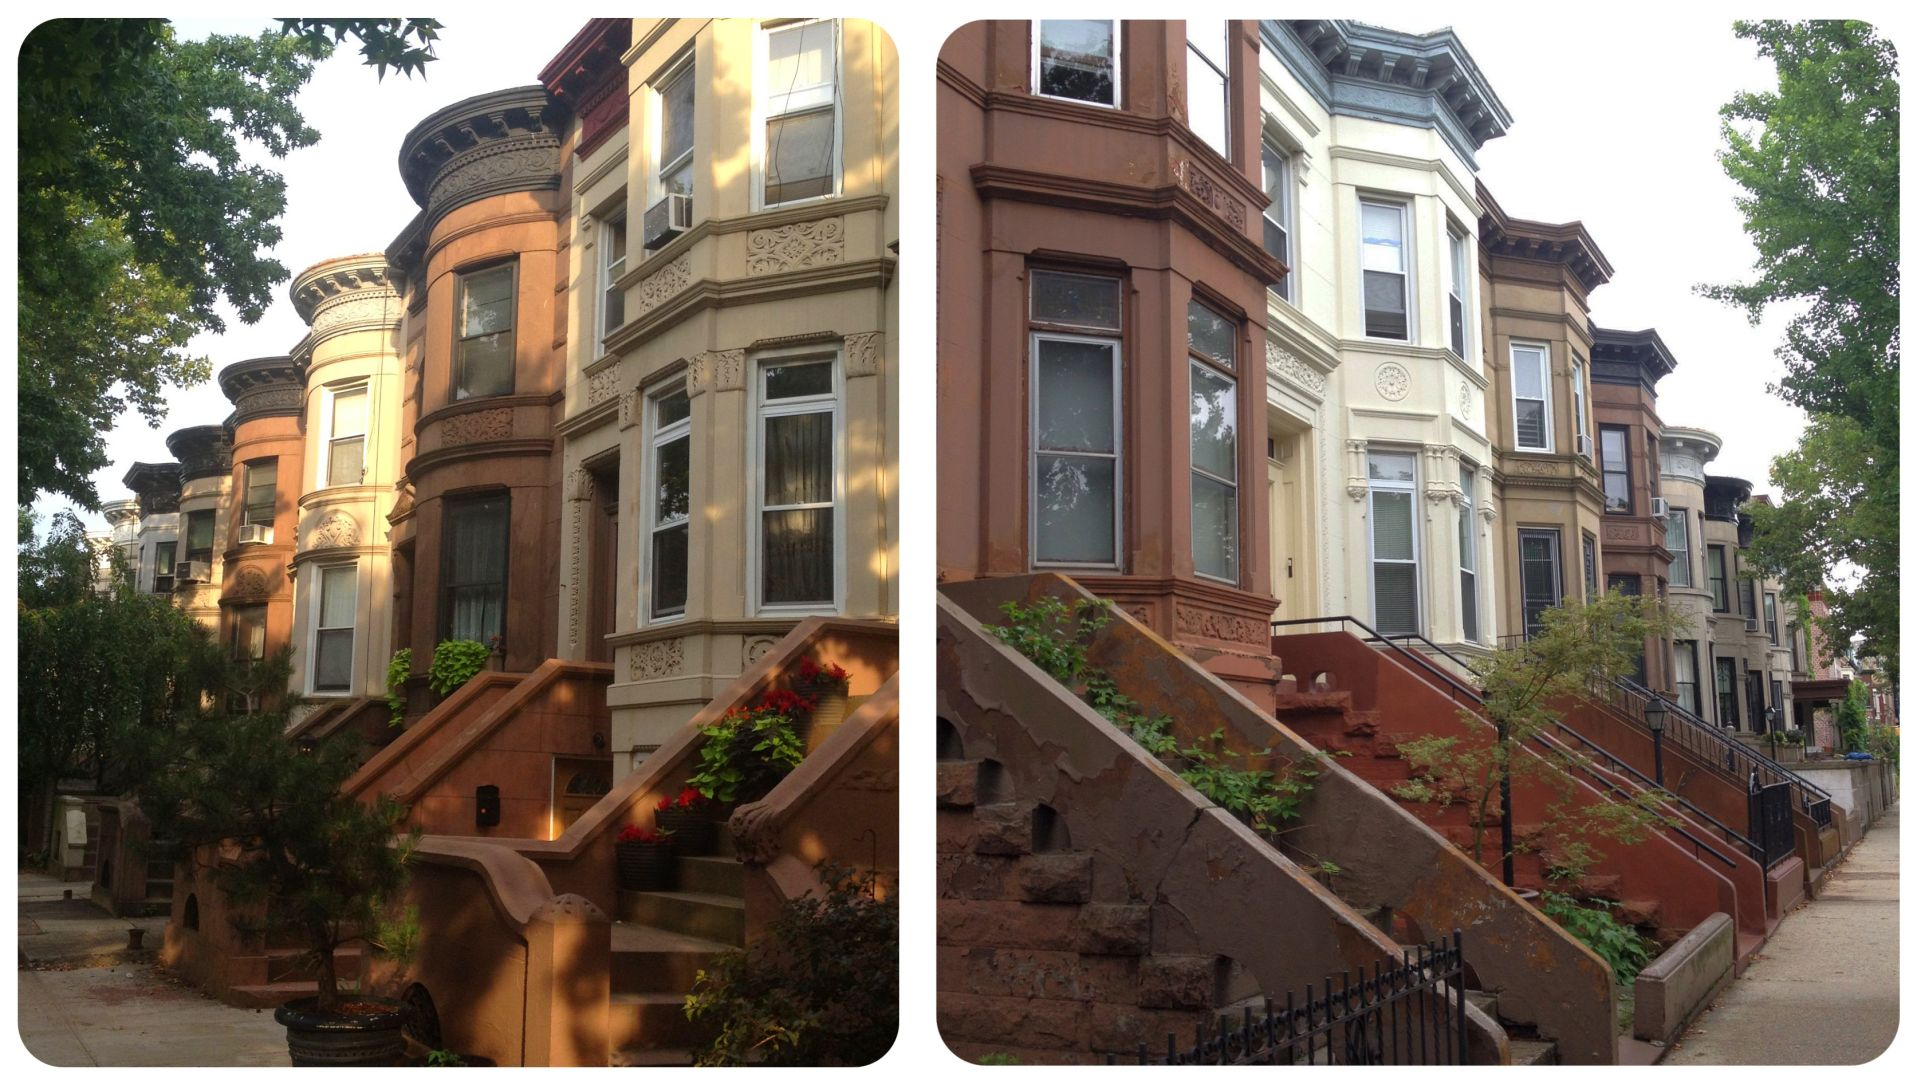 Brooklyn Prospect Lefferts Gardens